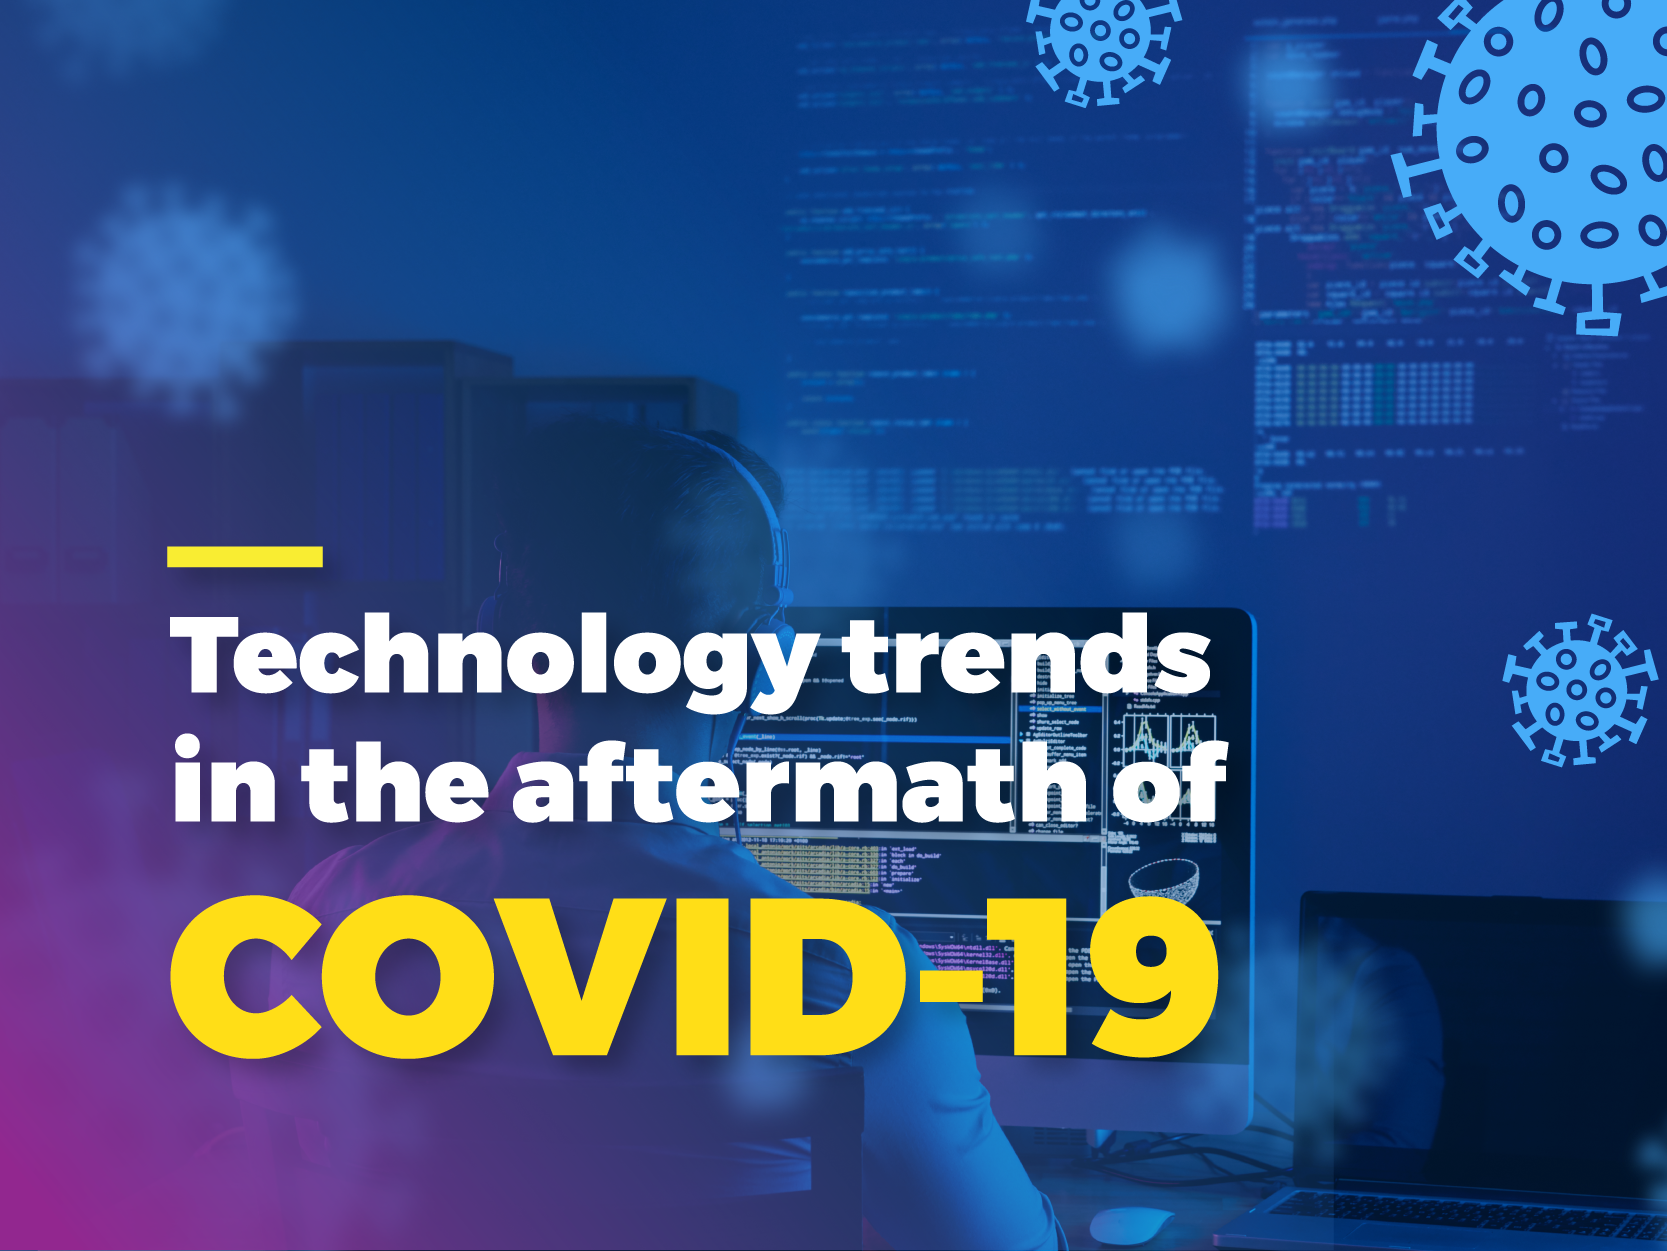 Technology trends in the aftermath of Covid-19